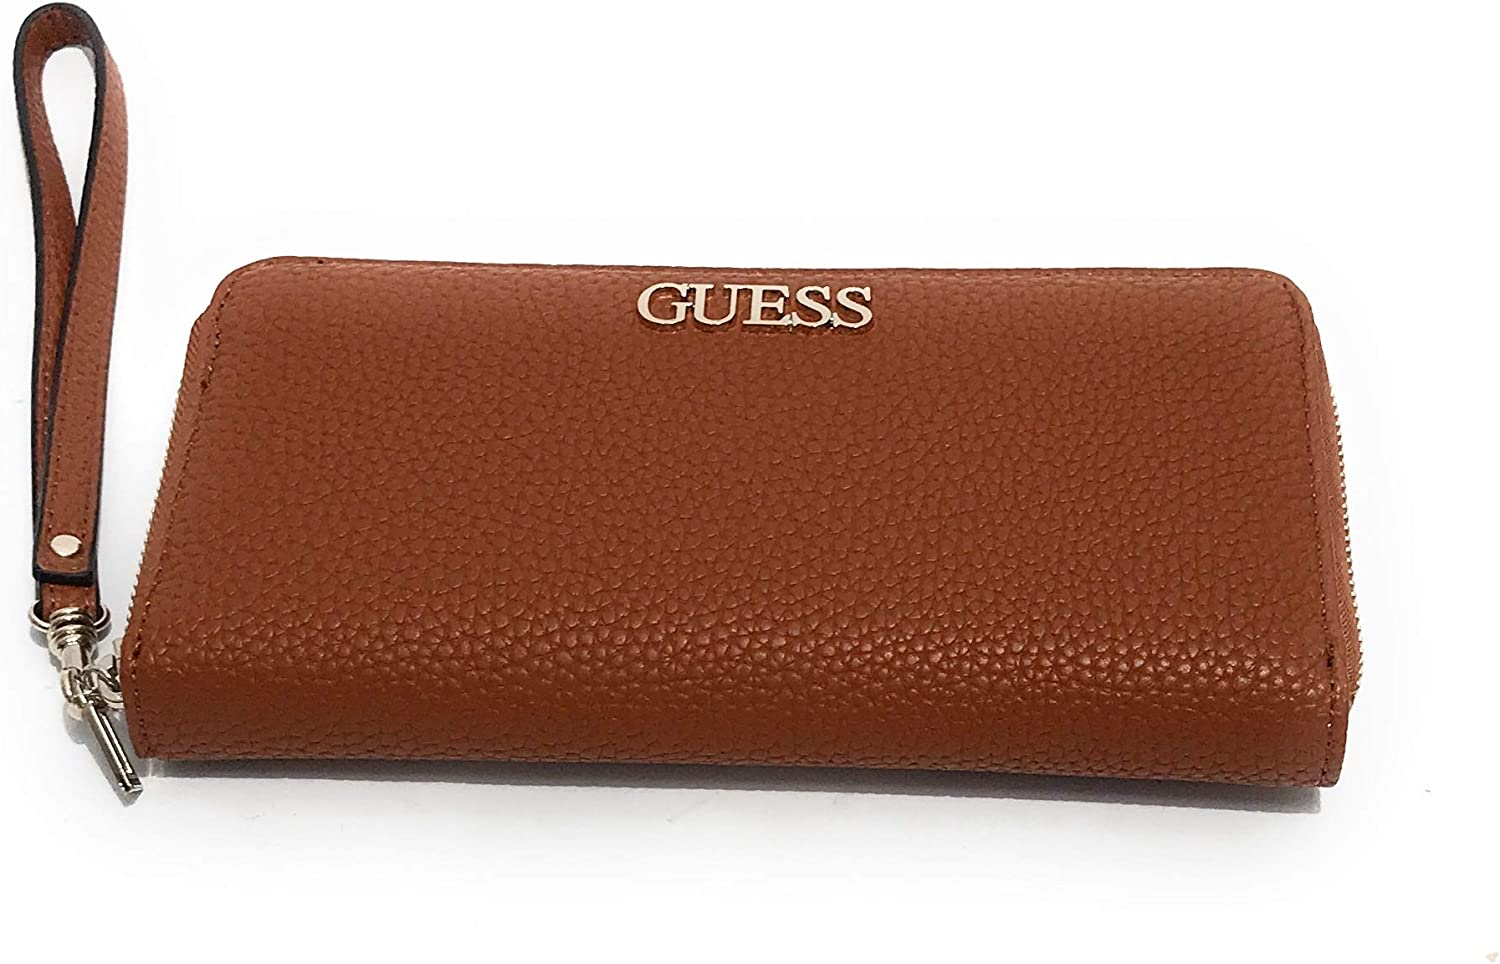 Guess Alby SLG Large Zip Around Cognac: